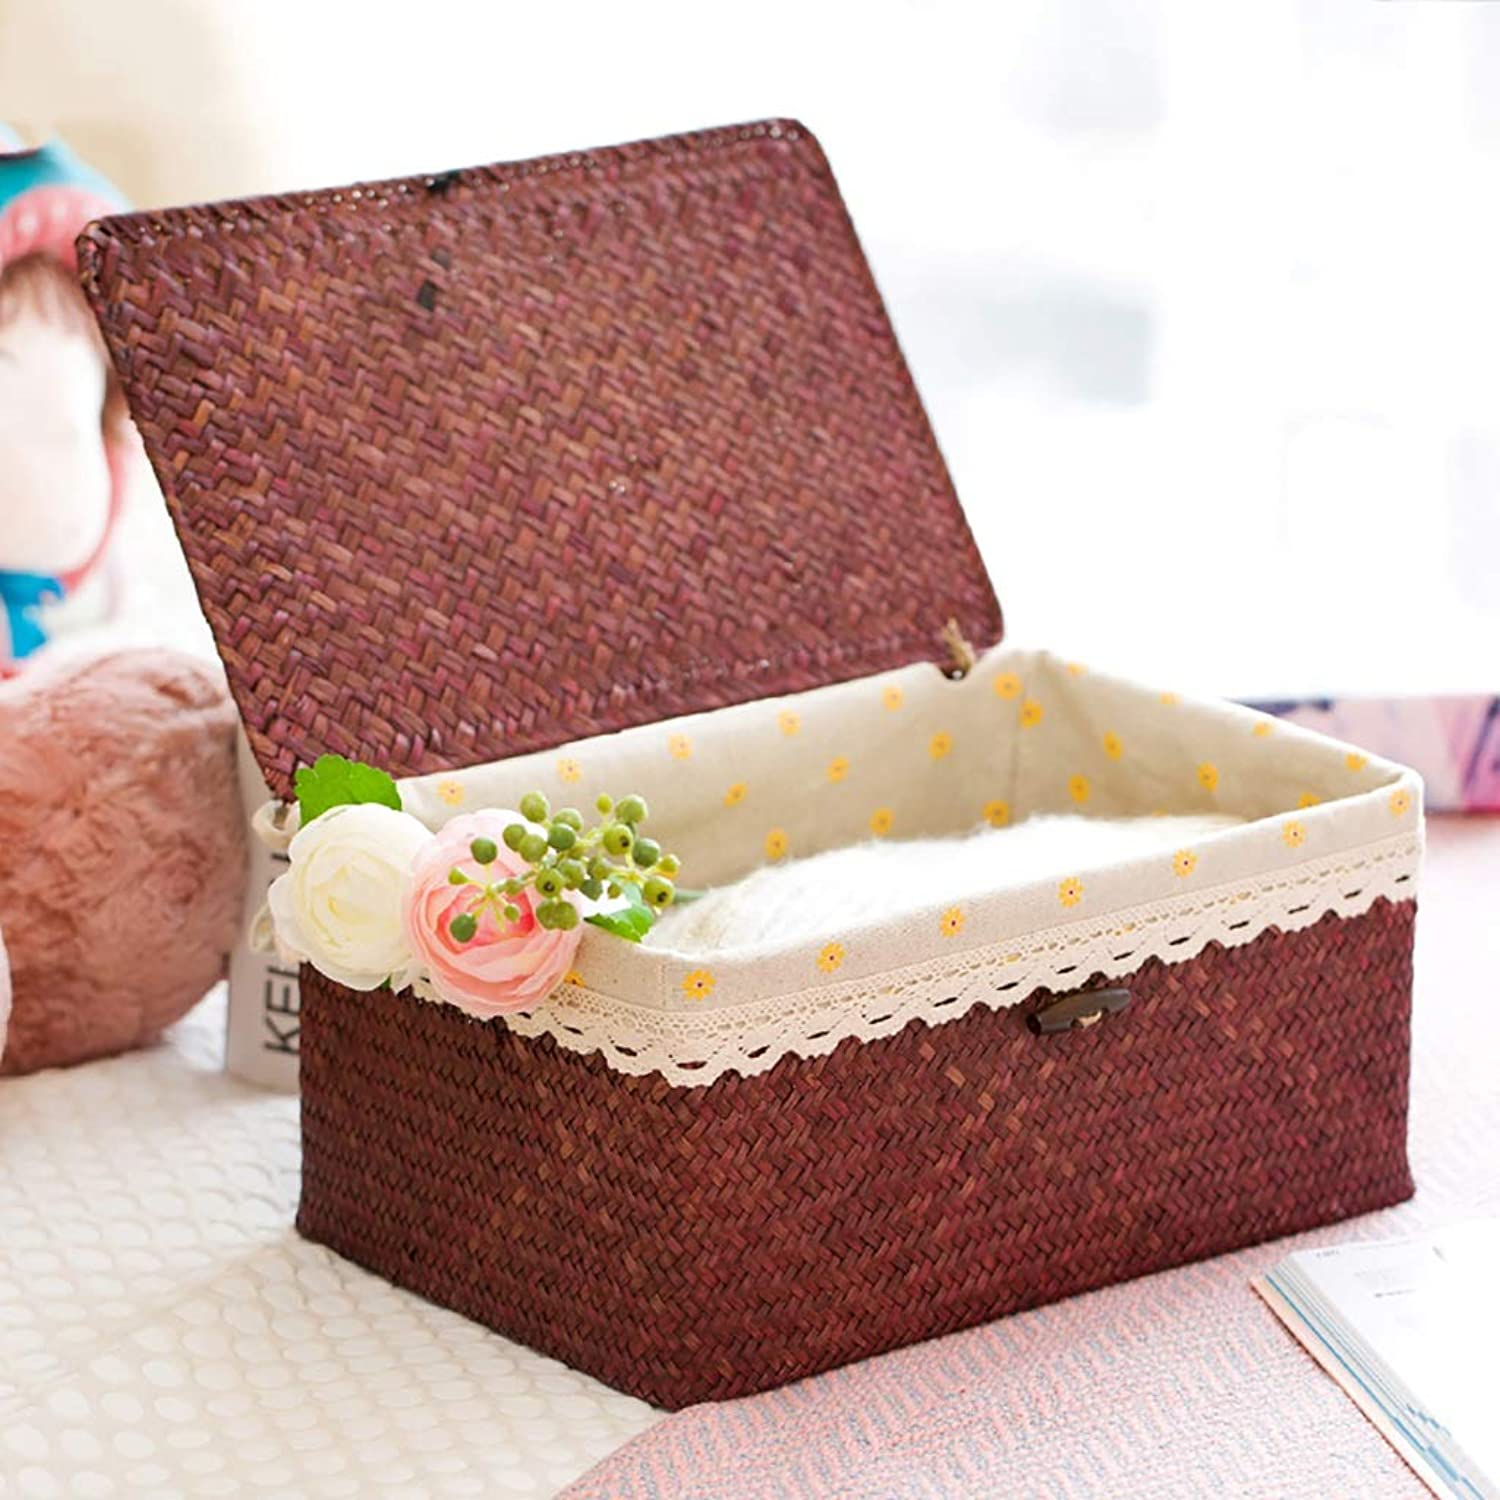 FANGFA Storage Basket Rattan Hand-Woven Living Room Bedroom Clothes Toy Storage boxs with lid Primary color and Brown, LWH  33  22  16cm (color   Brown, Size   LWH 33  22  16cm)